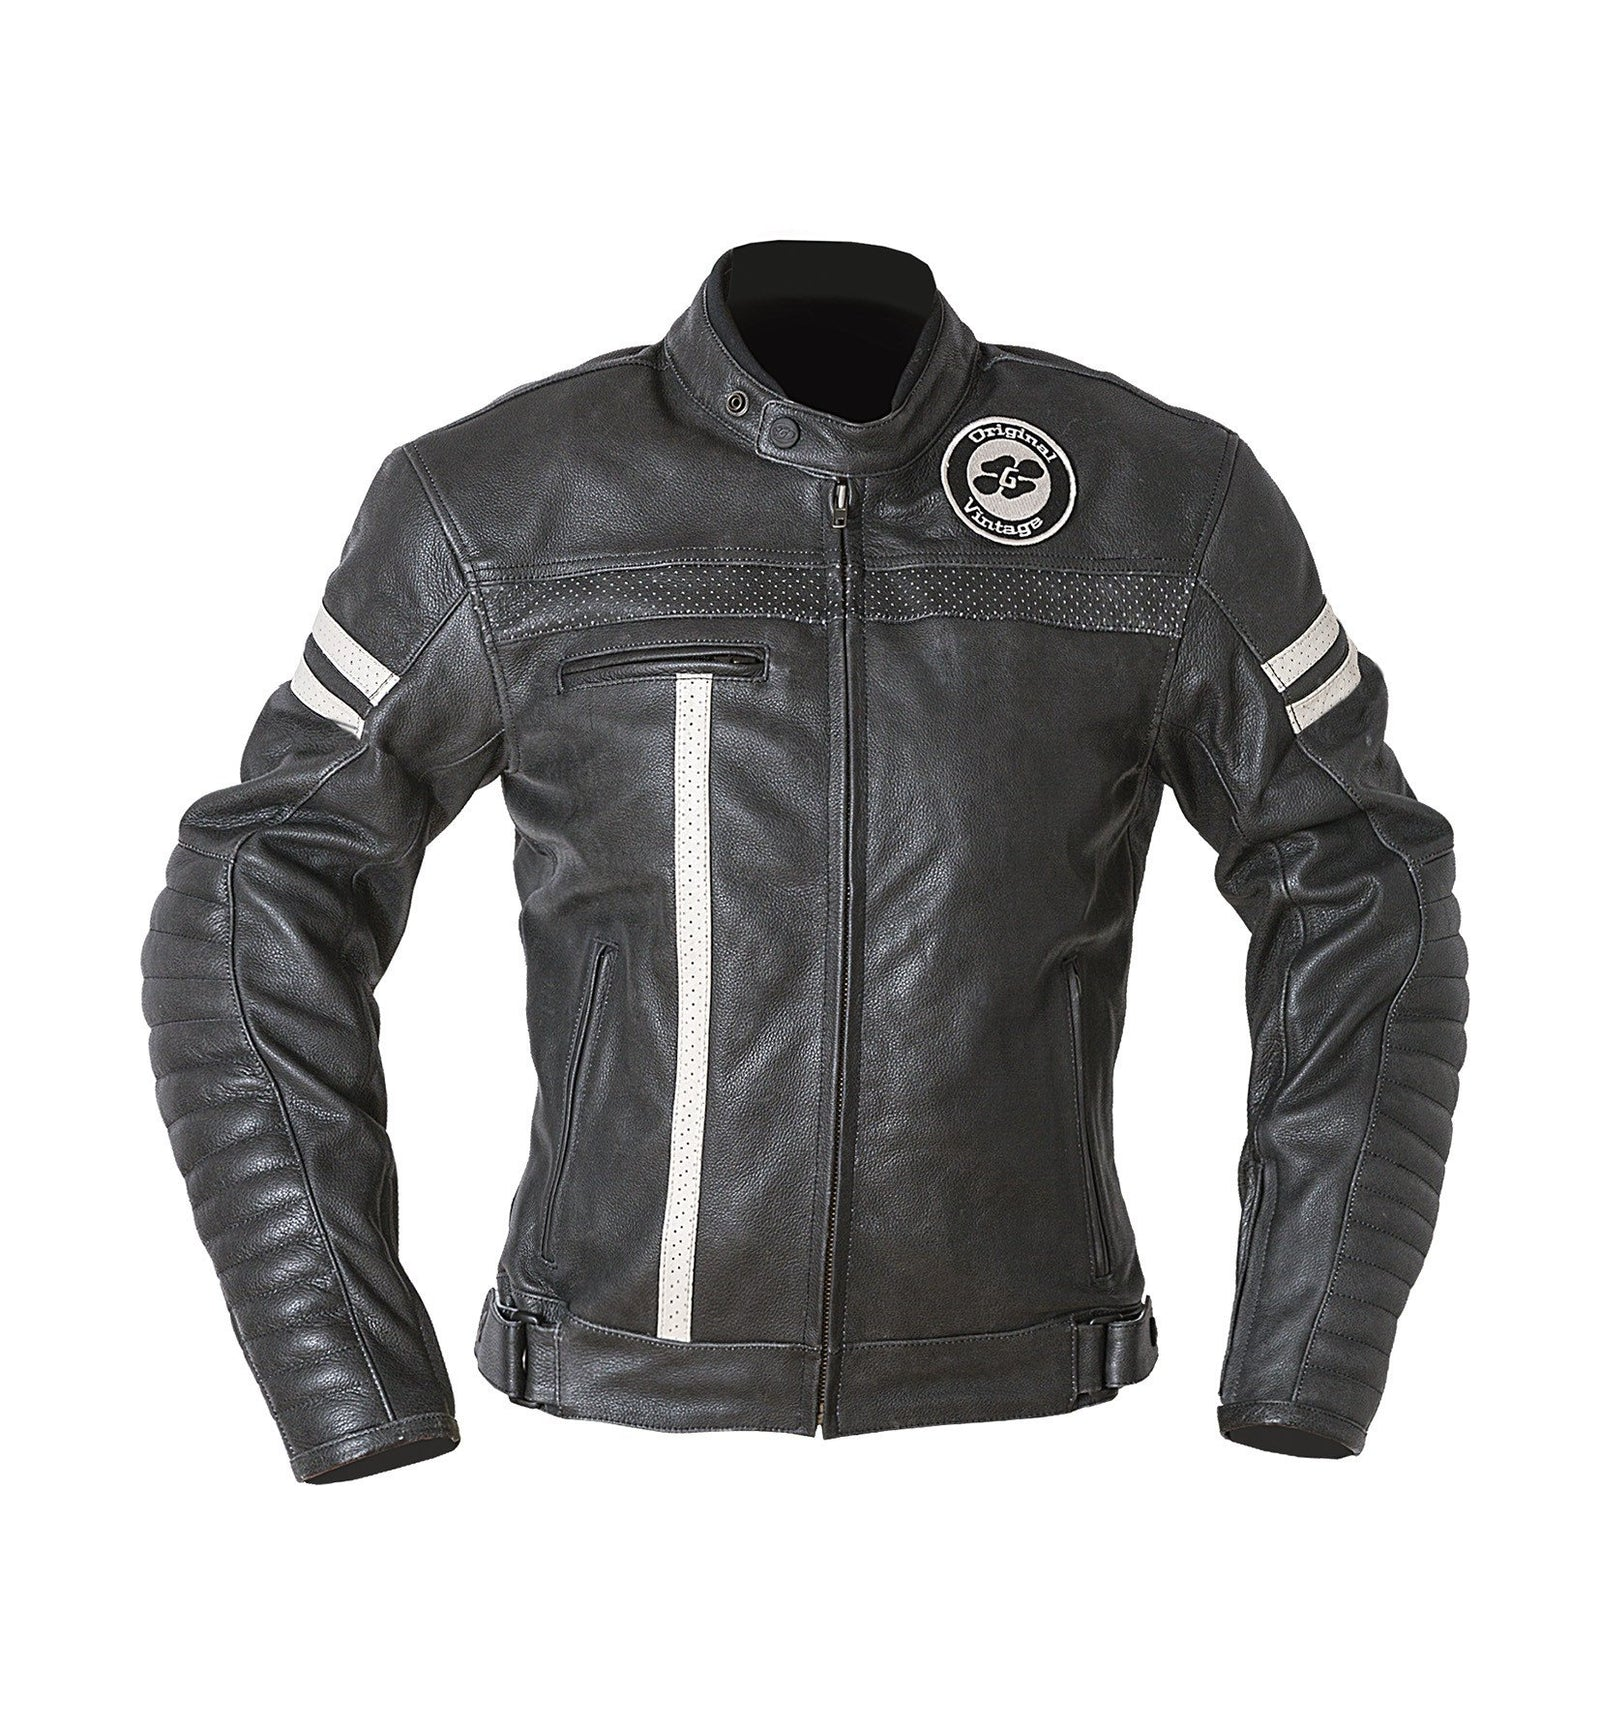 Garibaldi Ladies Vintage Moka Racer Leather Motorcycle Jacket